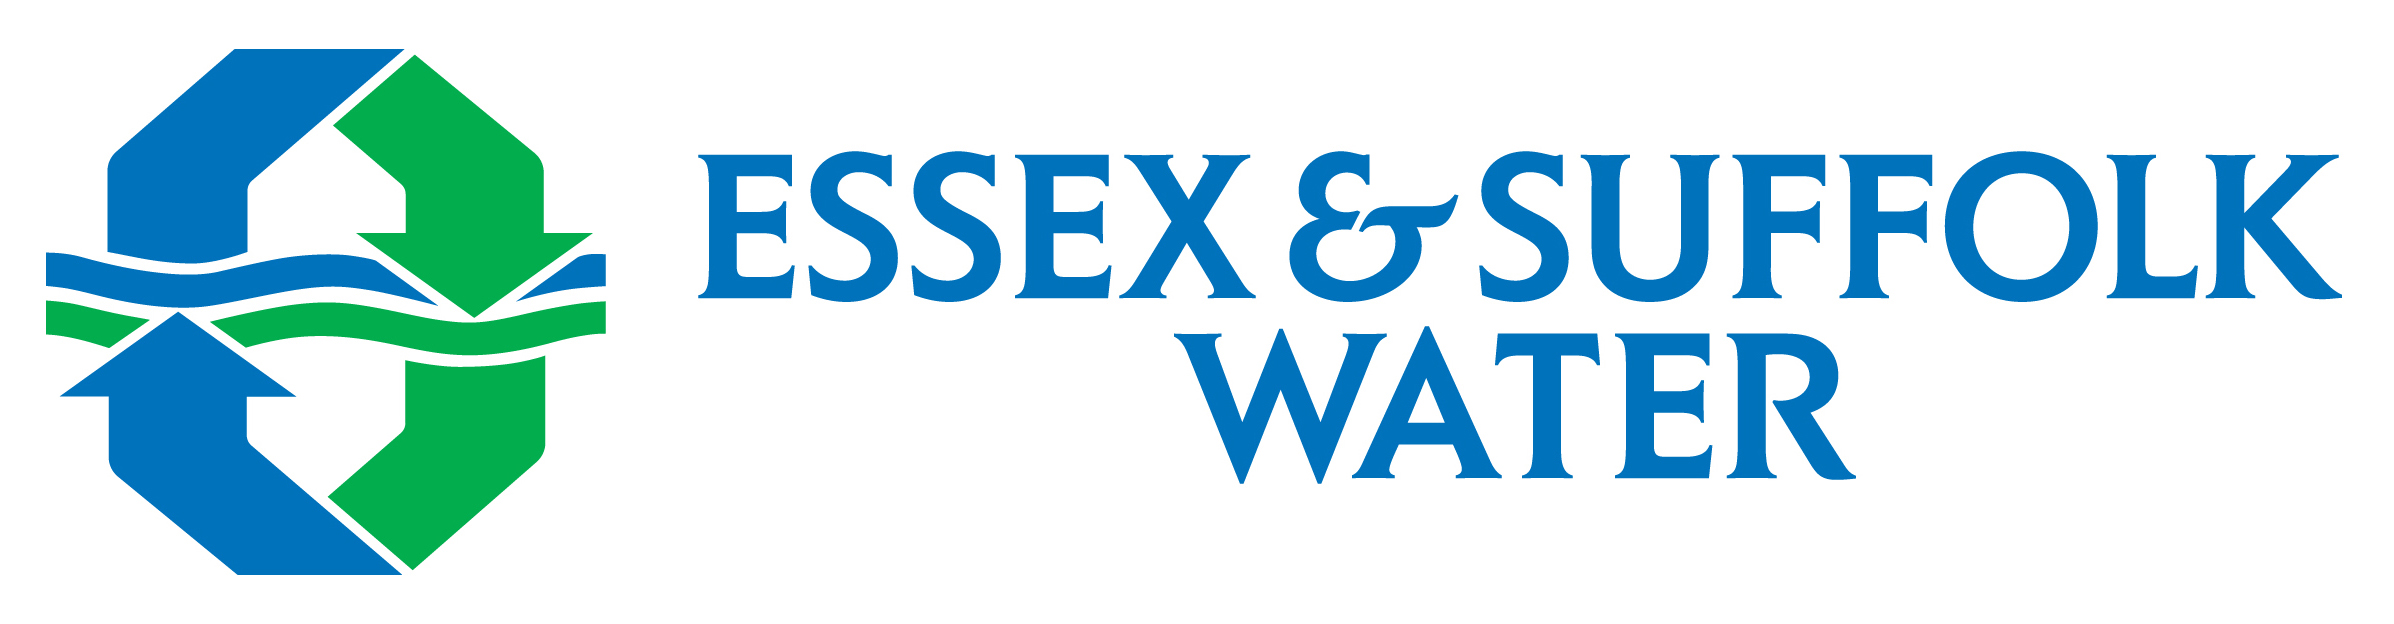 Essex & Suffolk Water logo  - Green and blue circular arrows with water running through the middle